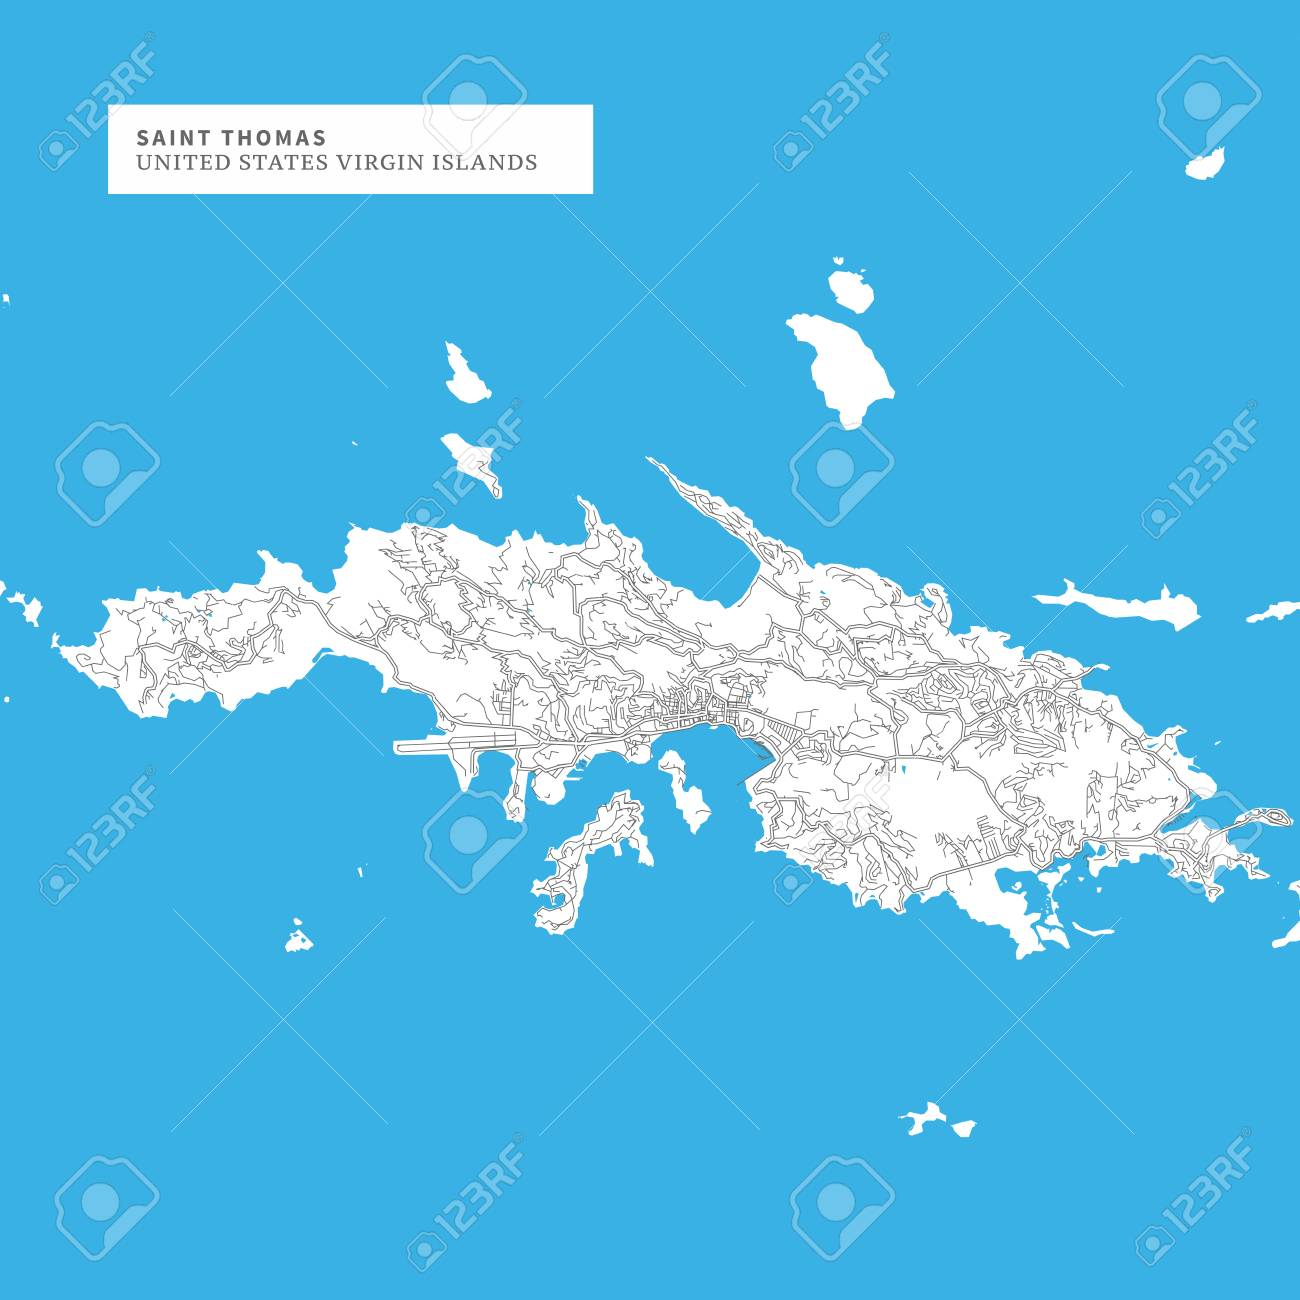 Map of Saint Thomas Island, United States Virgin Islands, contains..